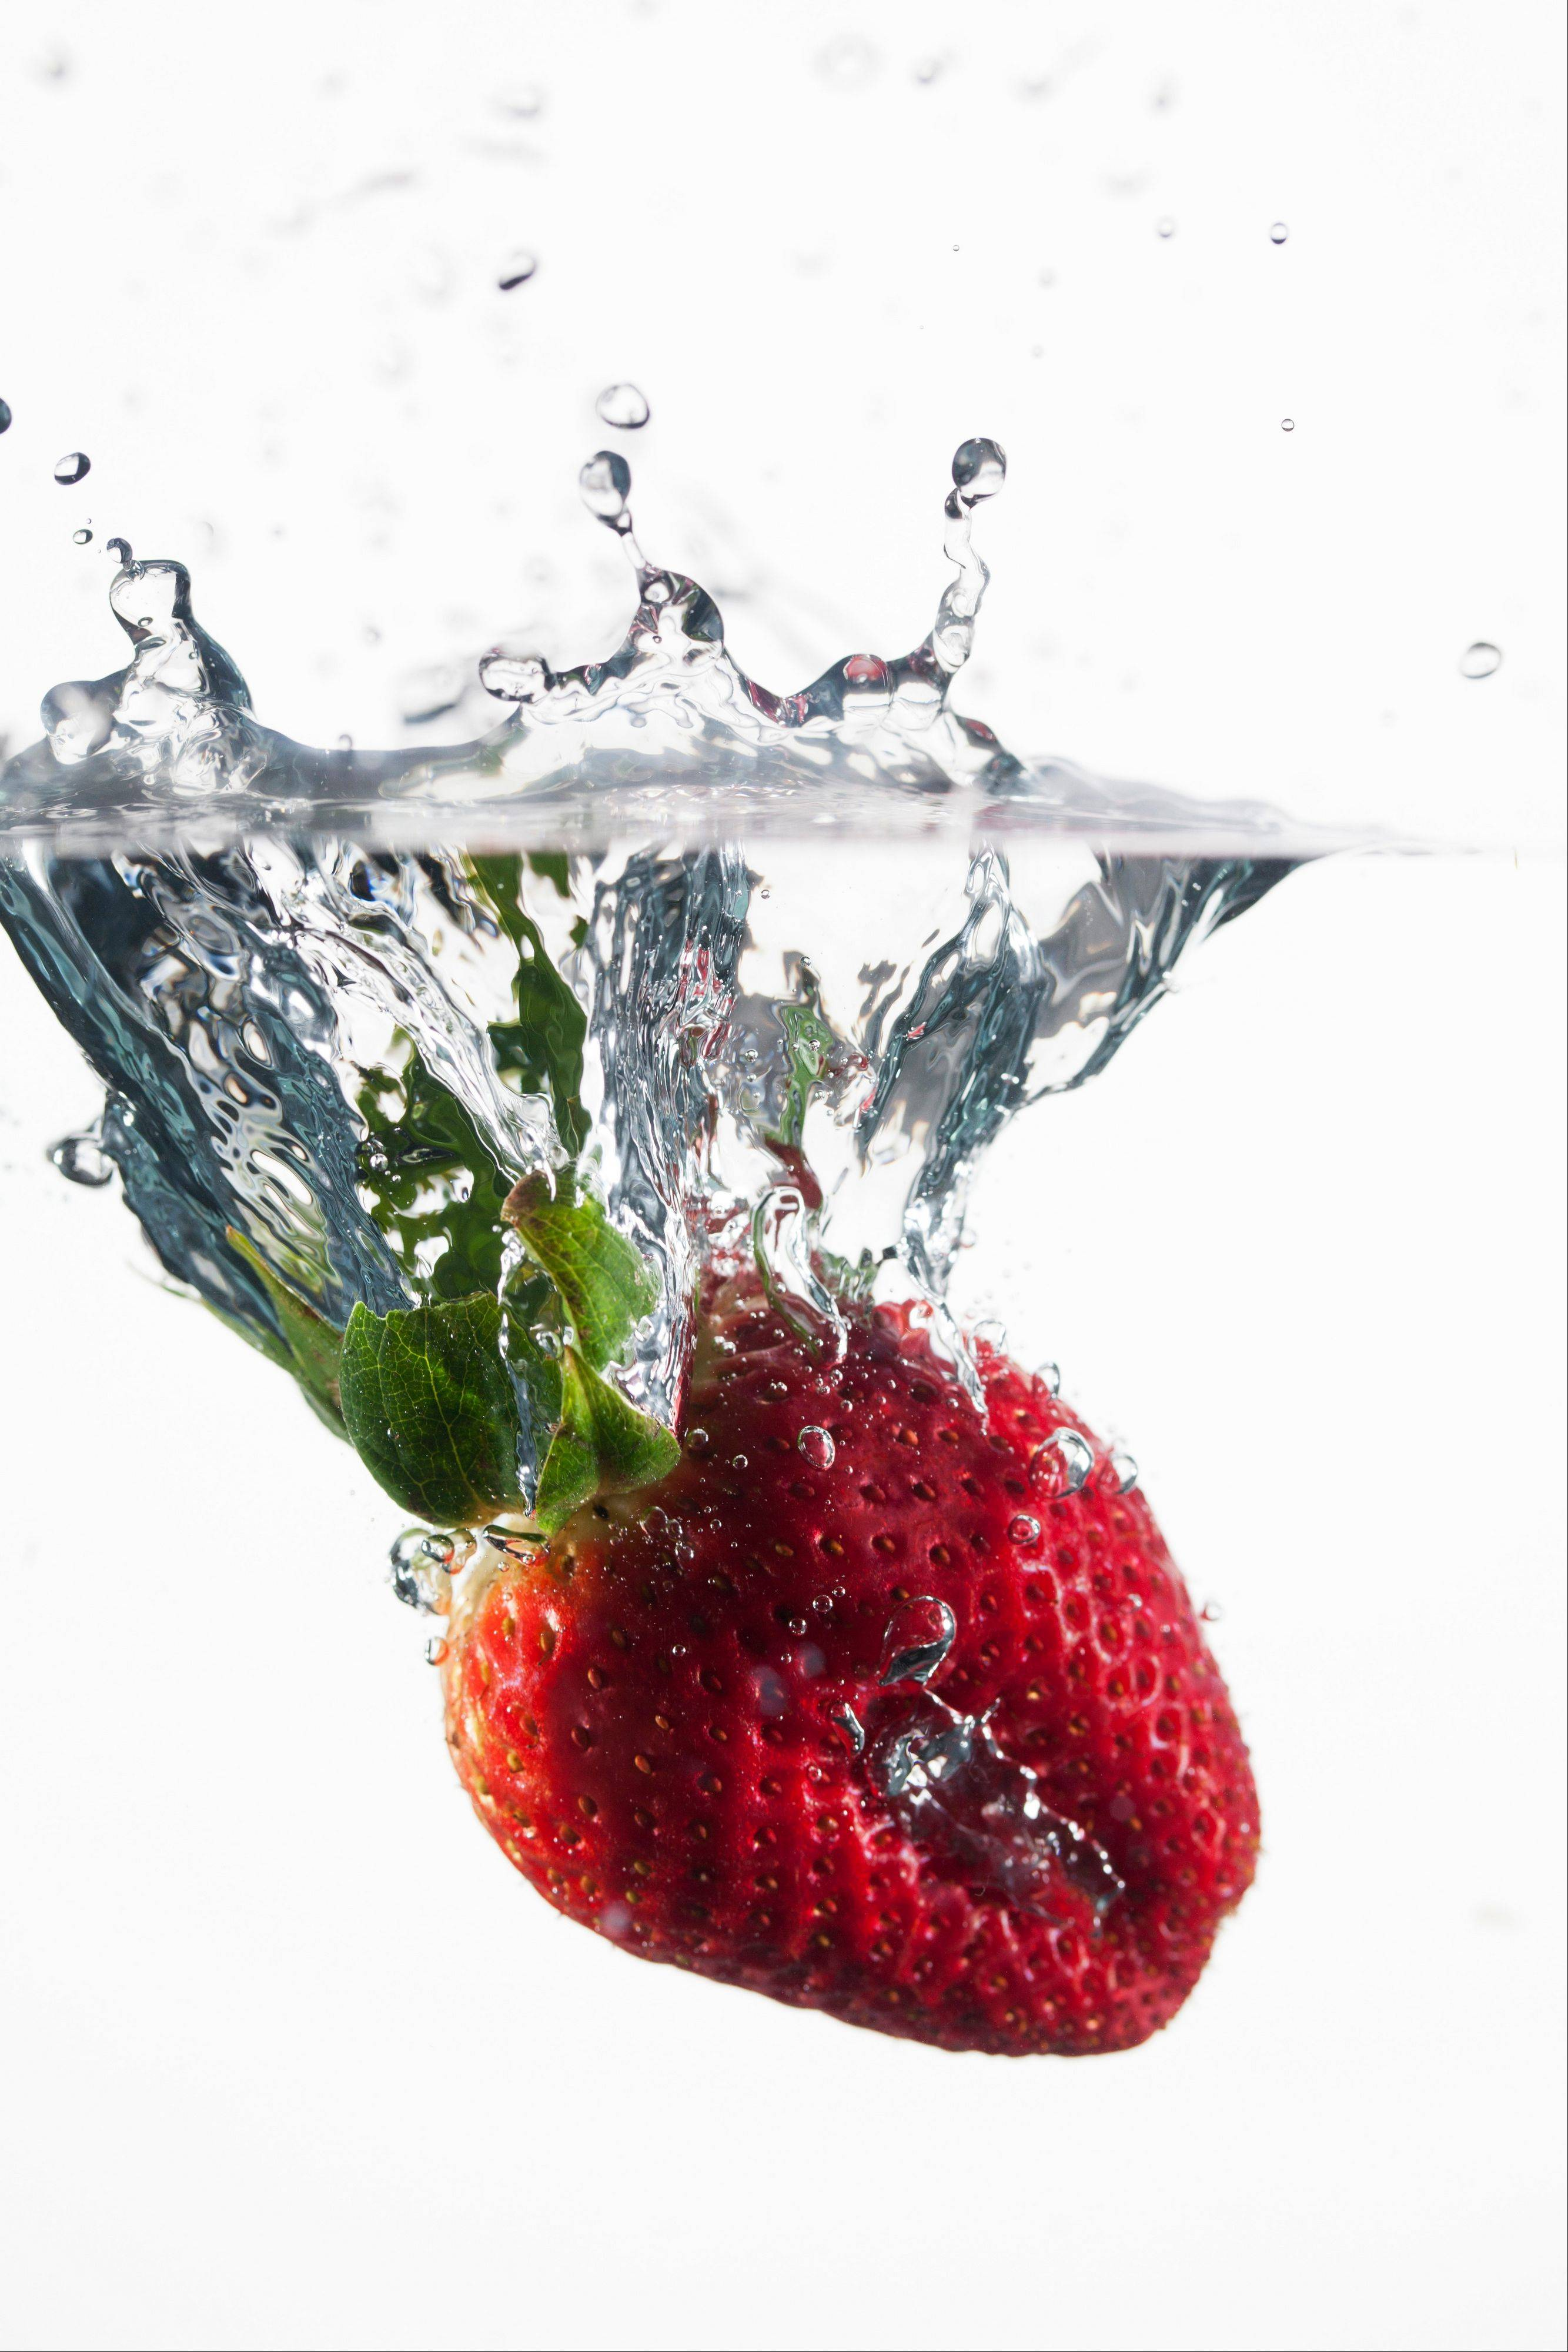 Heat-shocking extends the life of produce, such as strawberries, and is 100 percent organic and uses just one ingredient that every cook has handy, hot water.